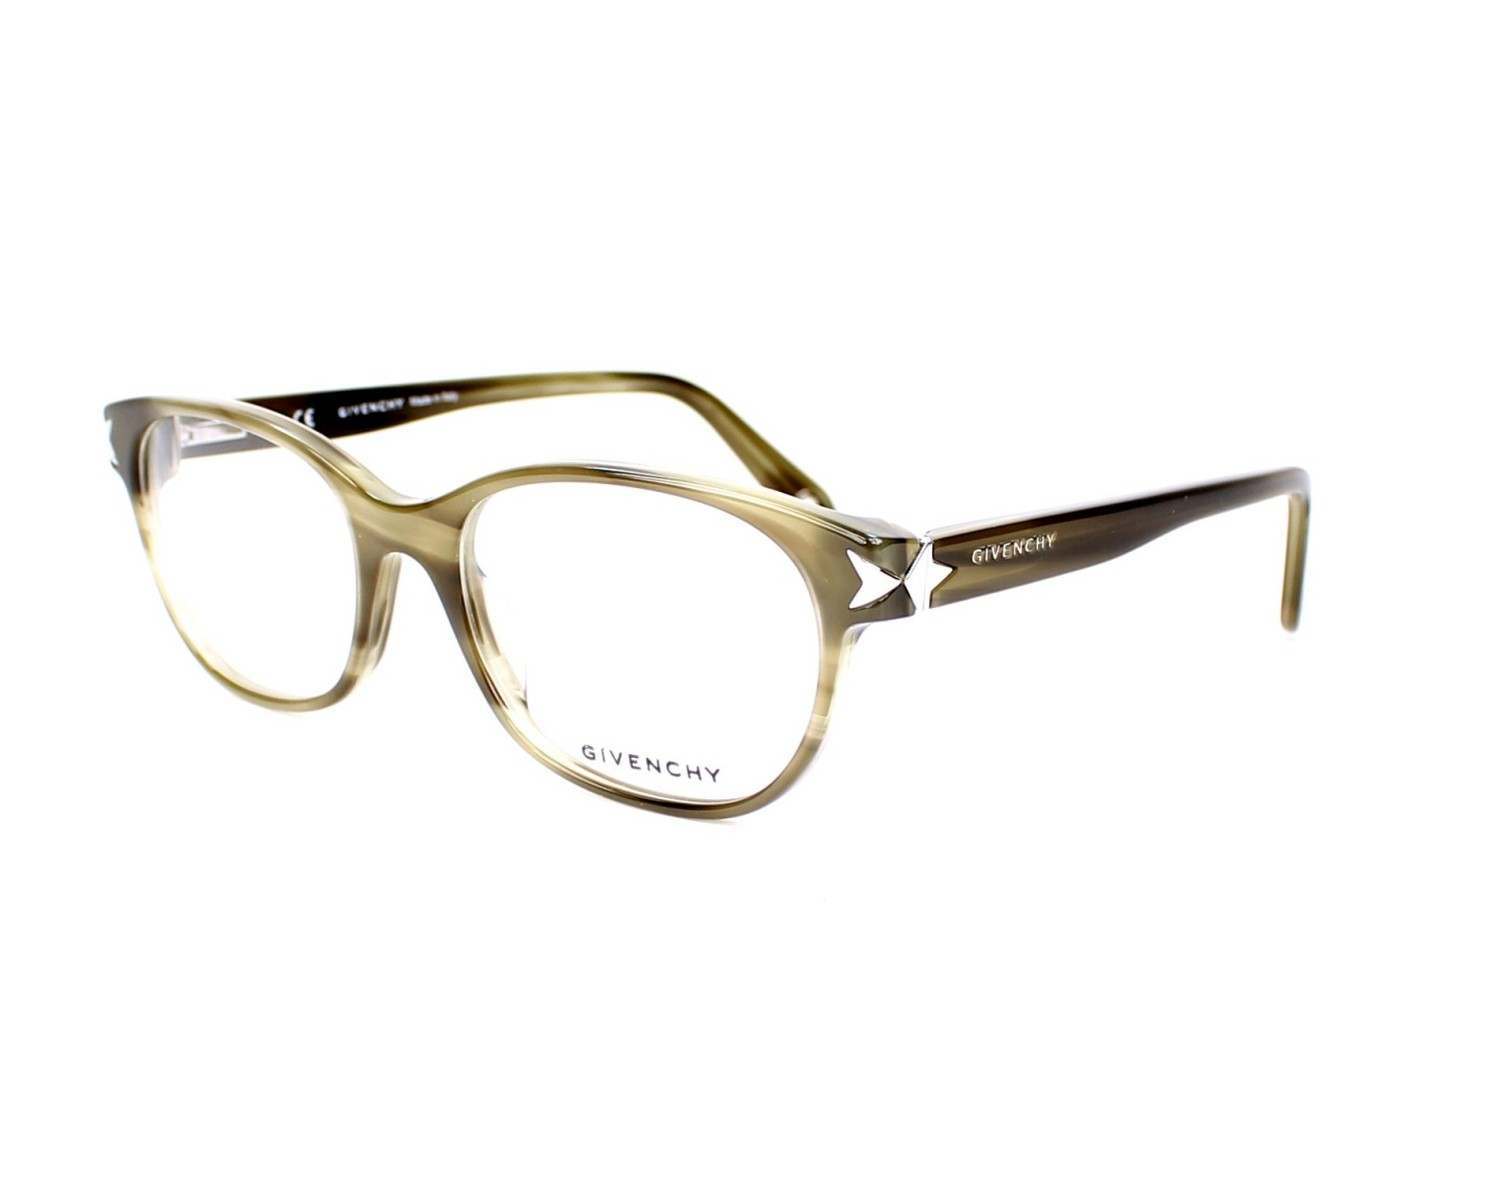 Eyeglass Frames Givenchy : Order your Givenchy eyeglasses VGV950 06DA 55 today